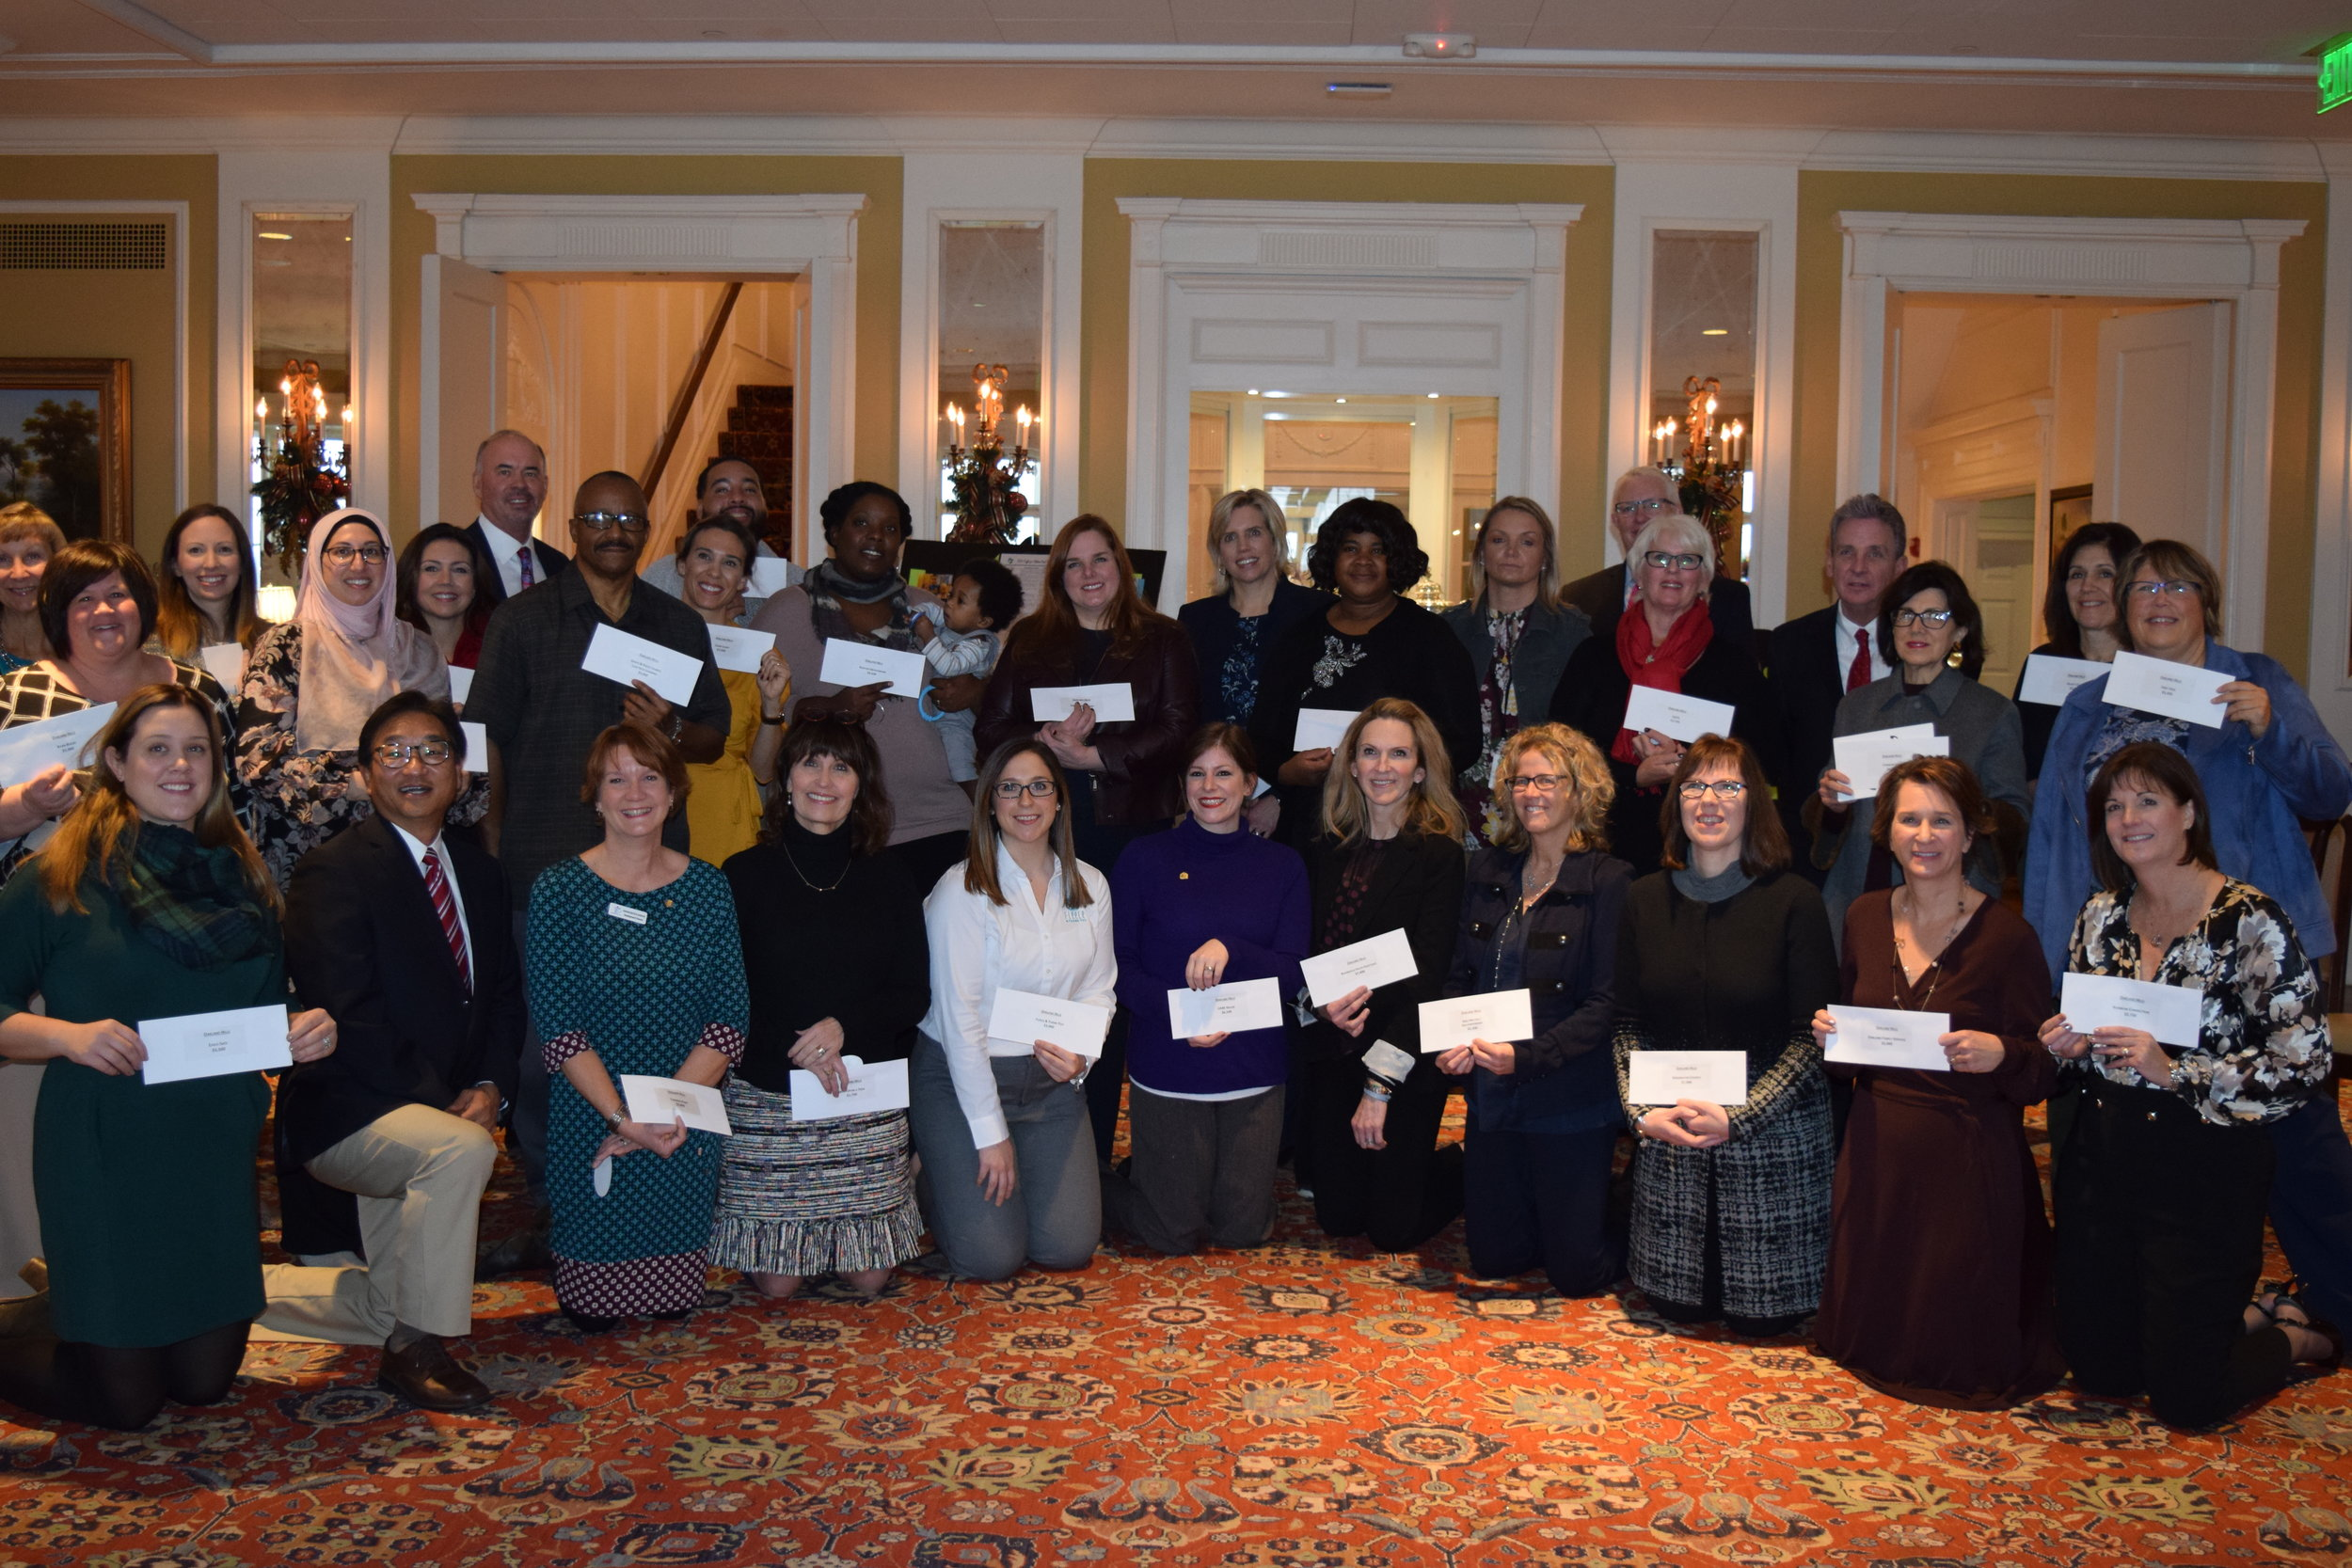 Oakland Hills Country Club awarded 28 organizations with grants.